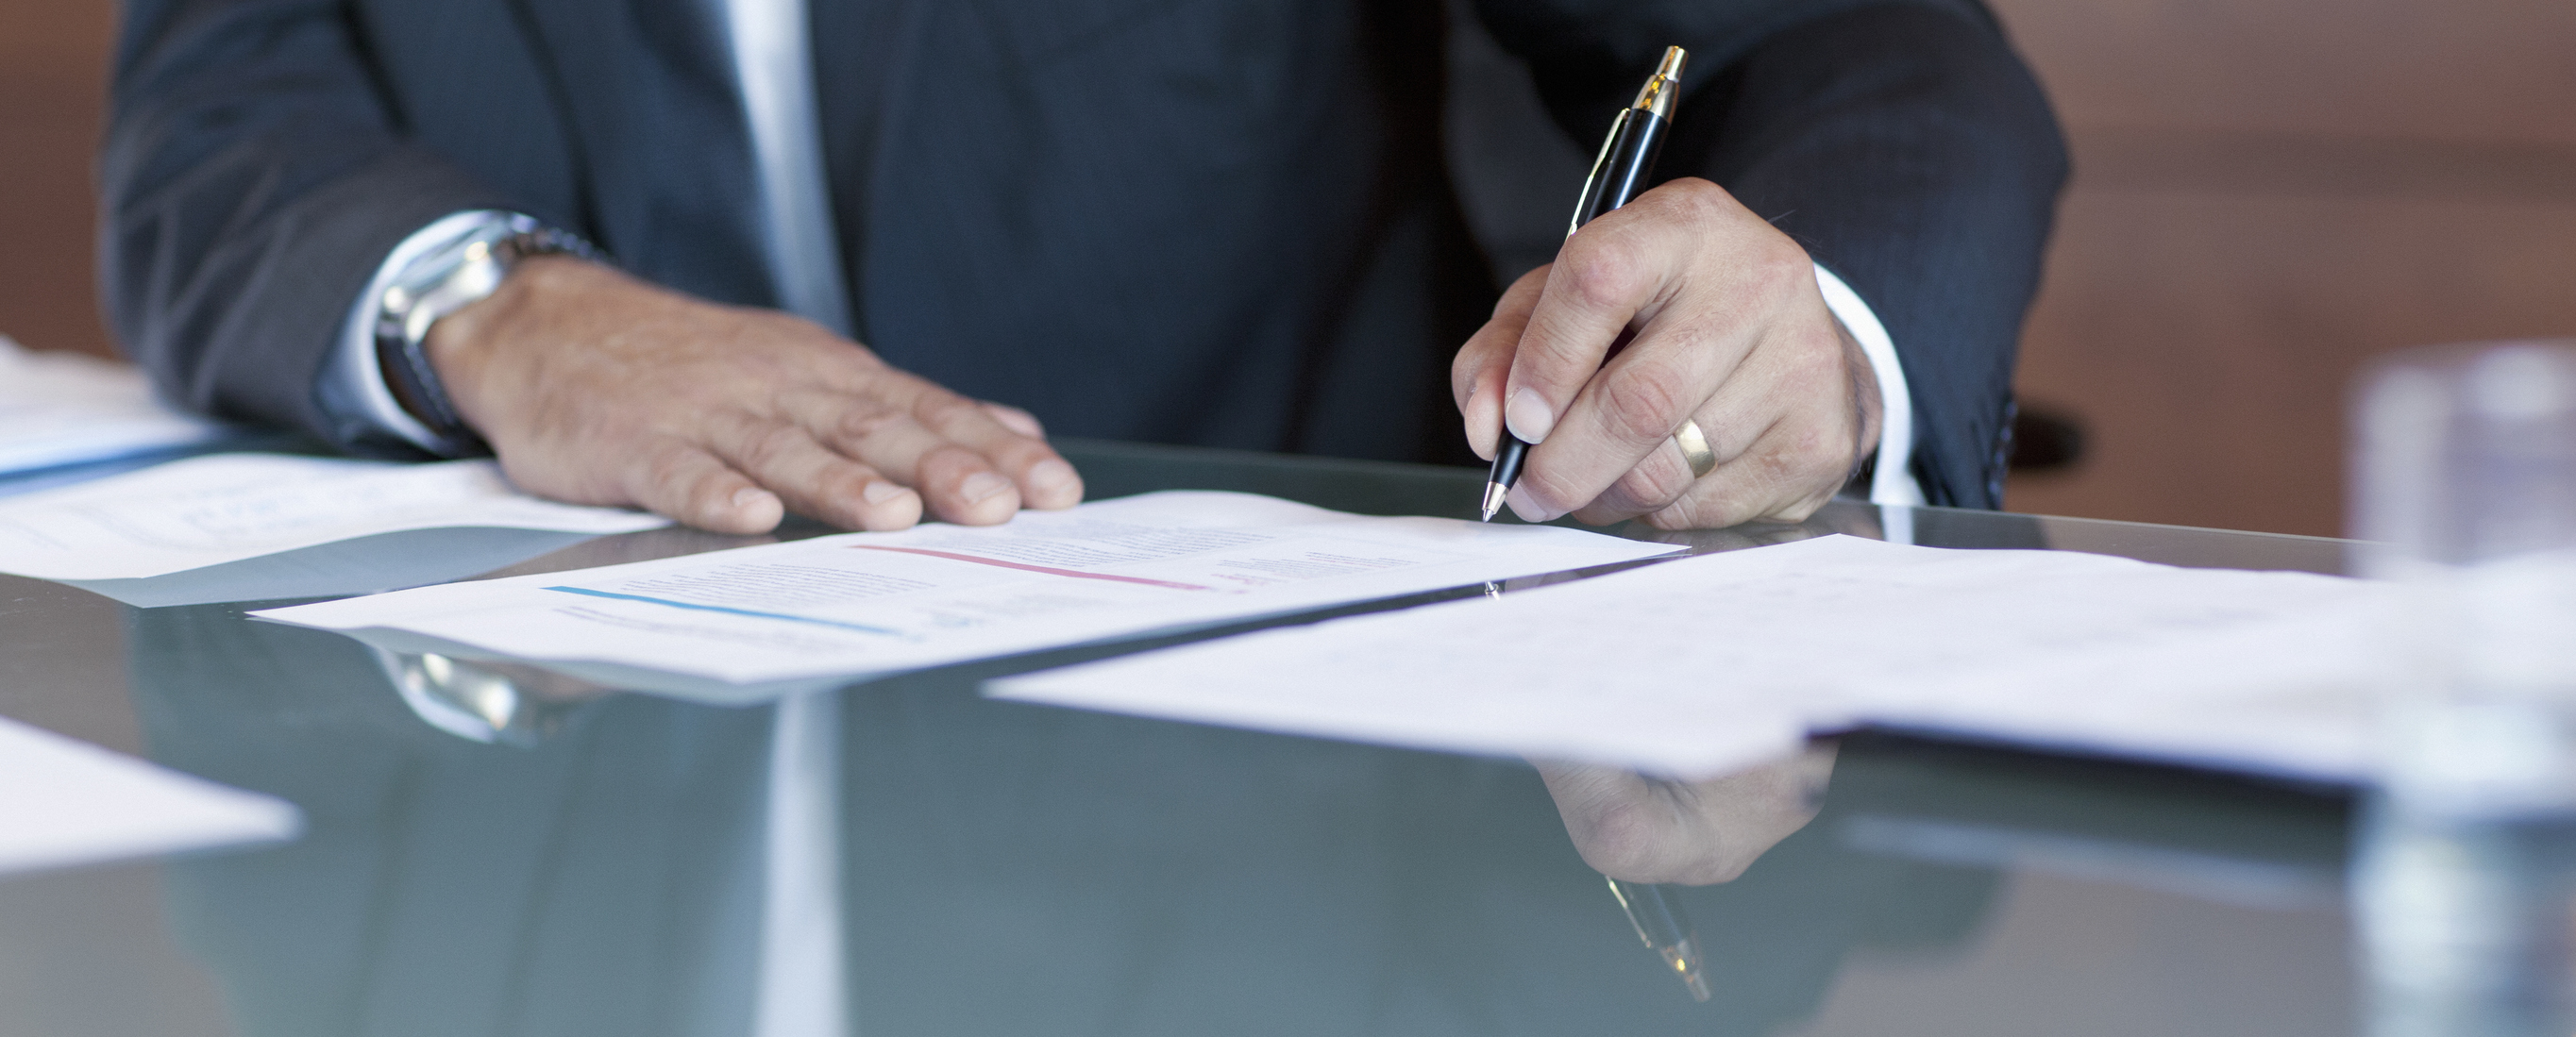 Businessman signing contract at table